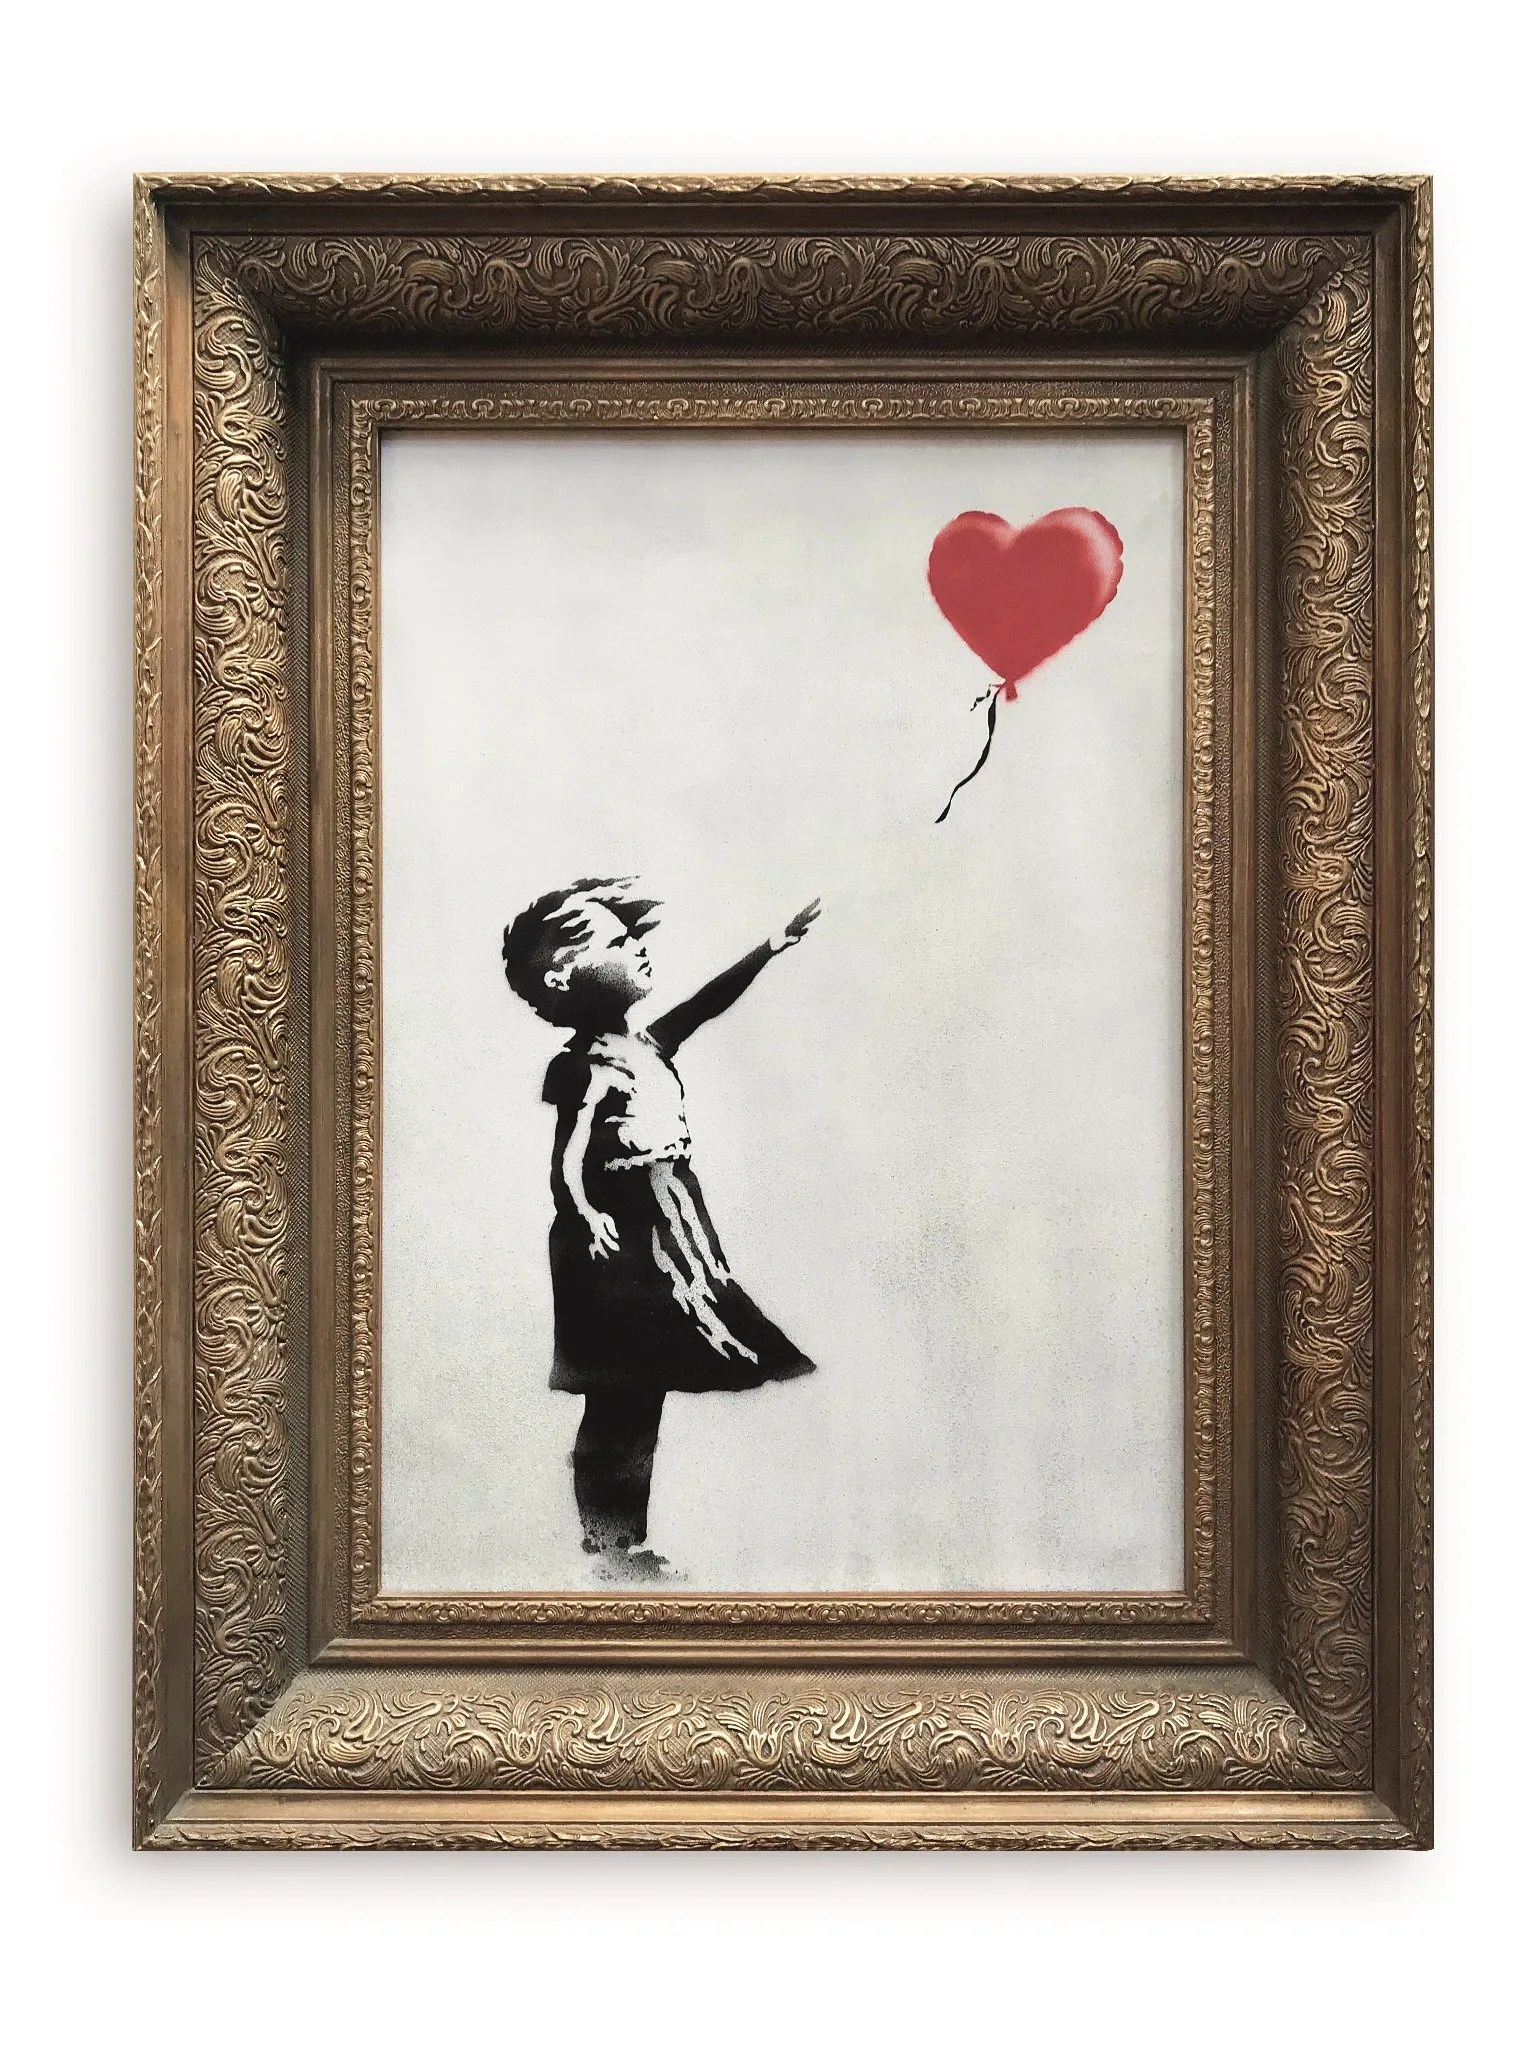 Frame Picture Banksy Claims No Collusion With Sotheby S But What About With His